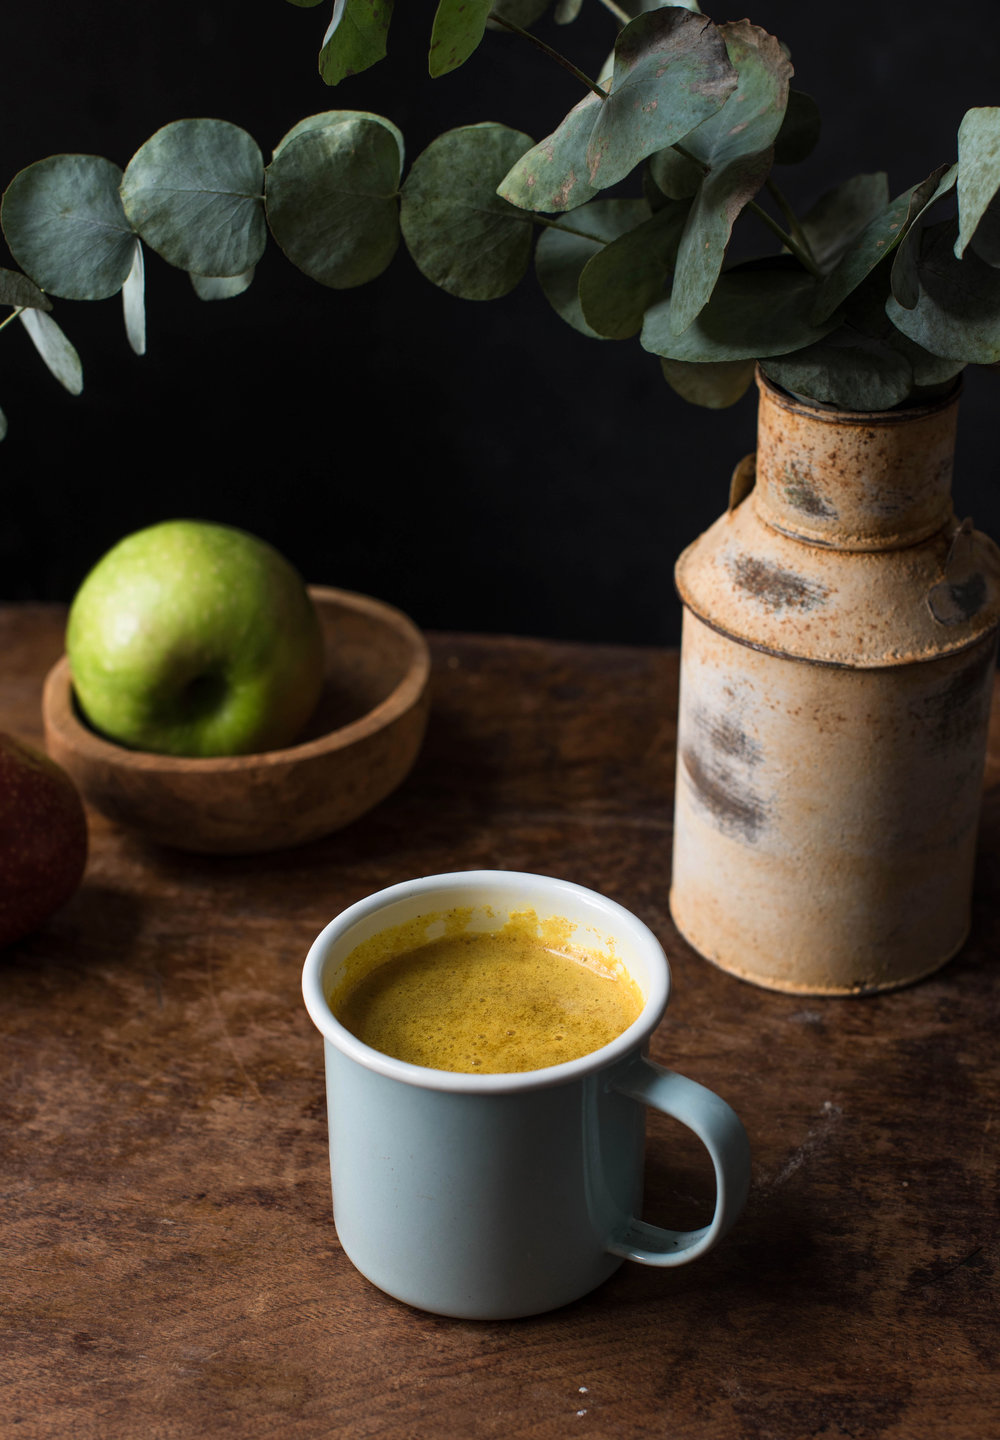 ROSE & IVY Journal Spiced Turmeric Apple Cider